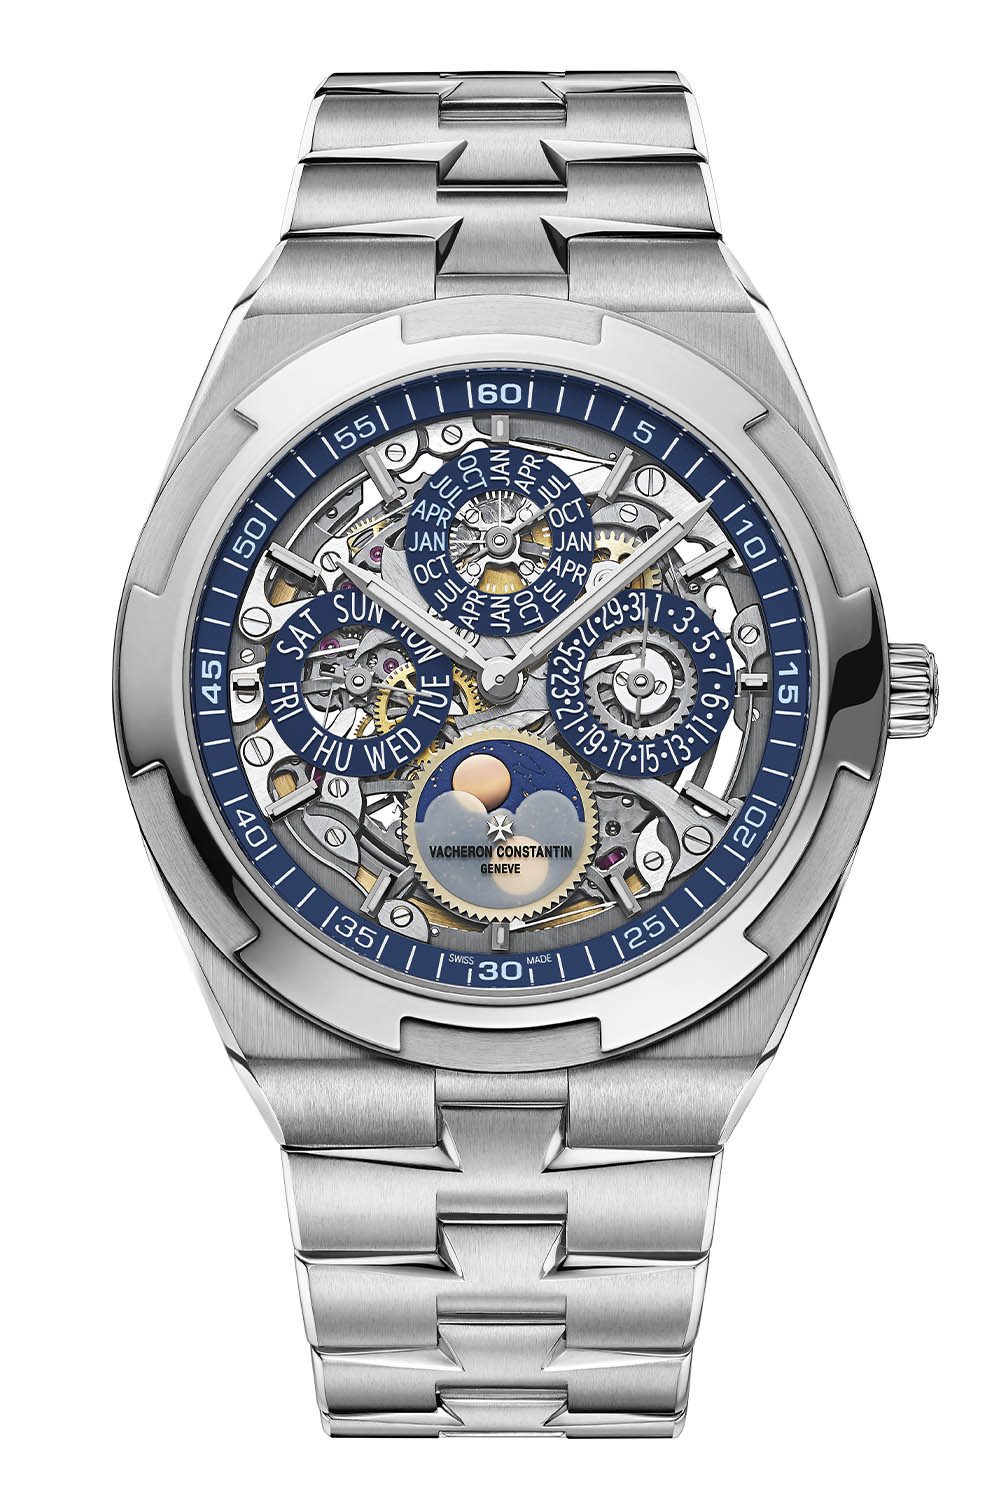 New Editions of the Vacheron Constantin Overseas Perpetual Calendar Ultra-Thin in White Gold 2021 - 8